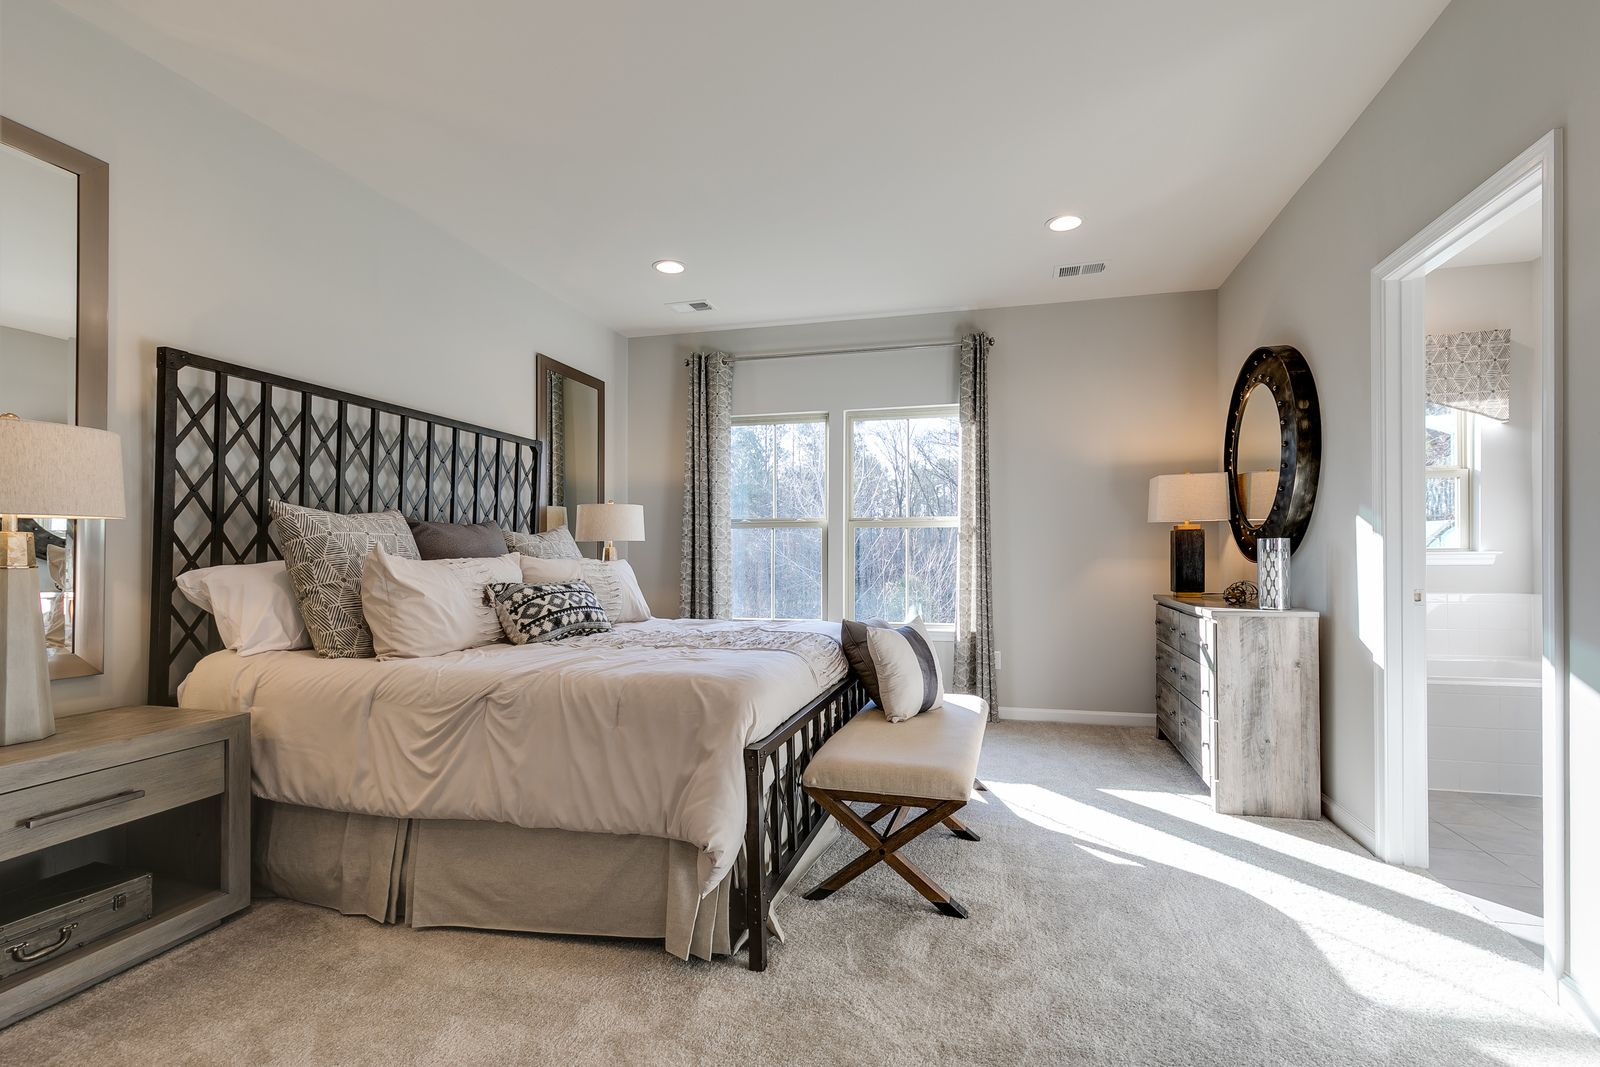 Bedroom featured in the Strauss Attic By Ryan Homes in Baltimore, MD